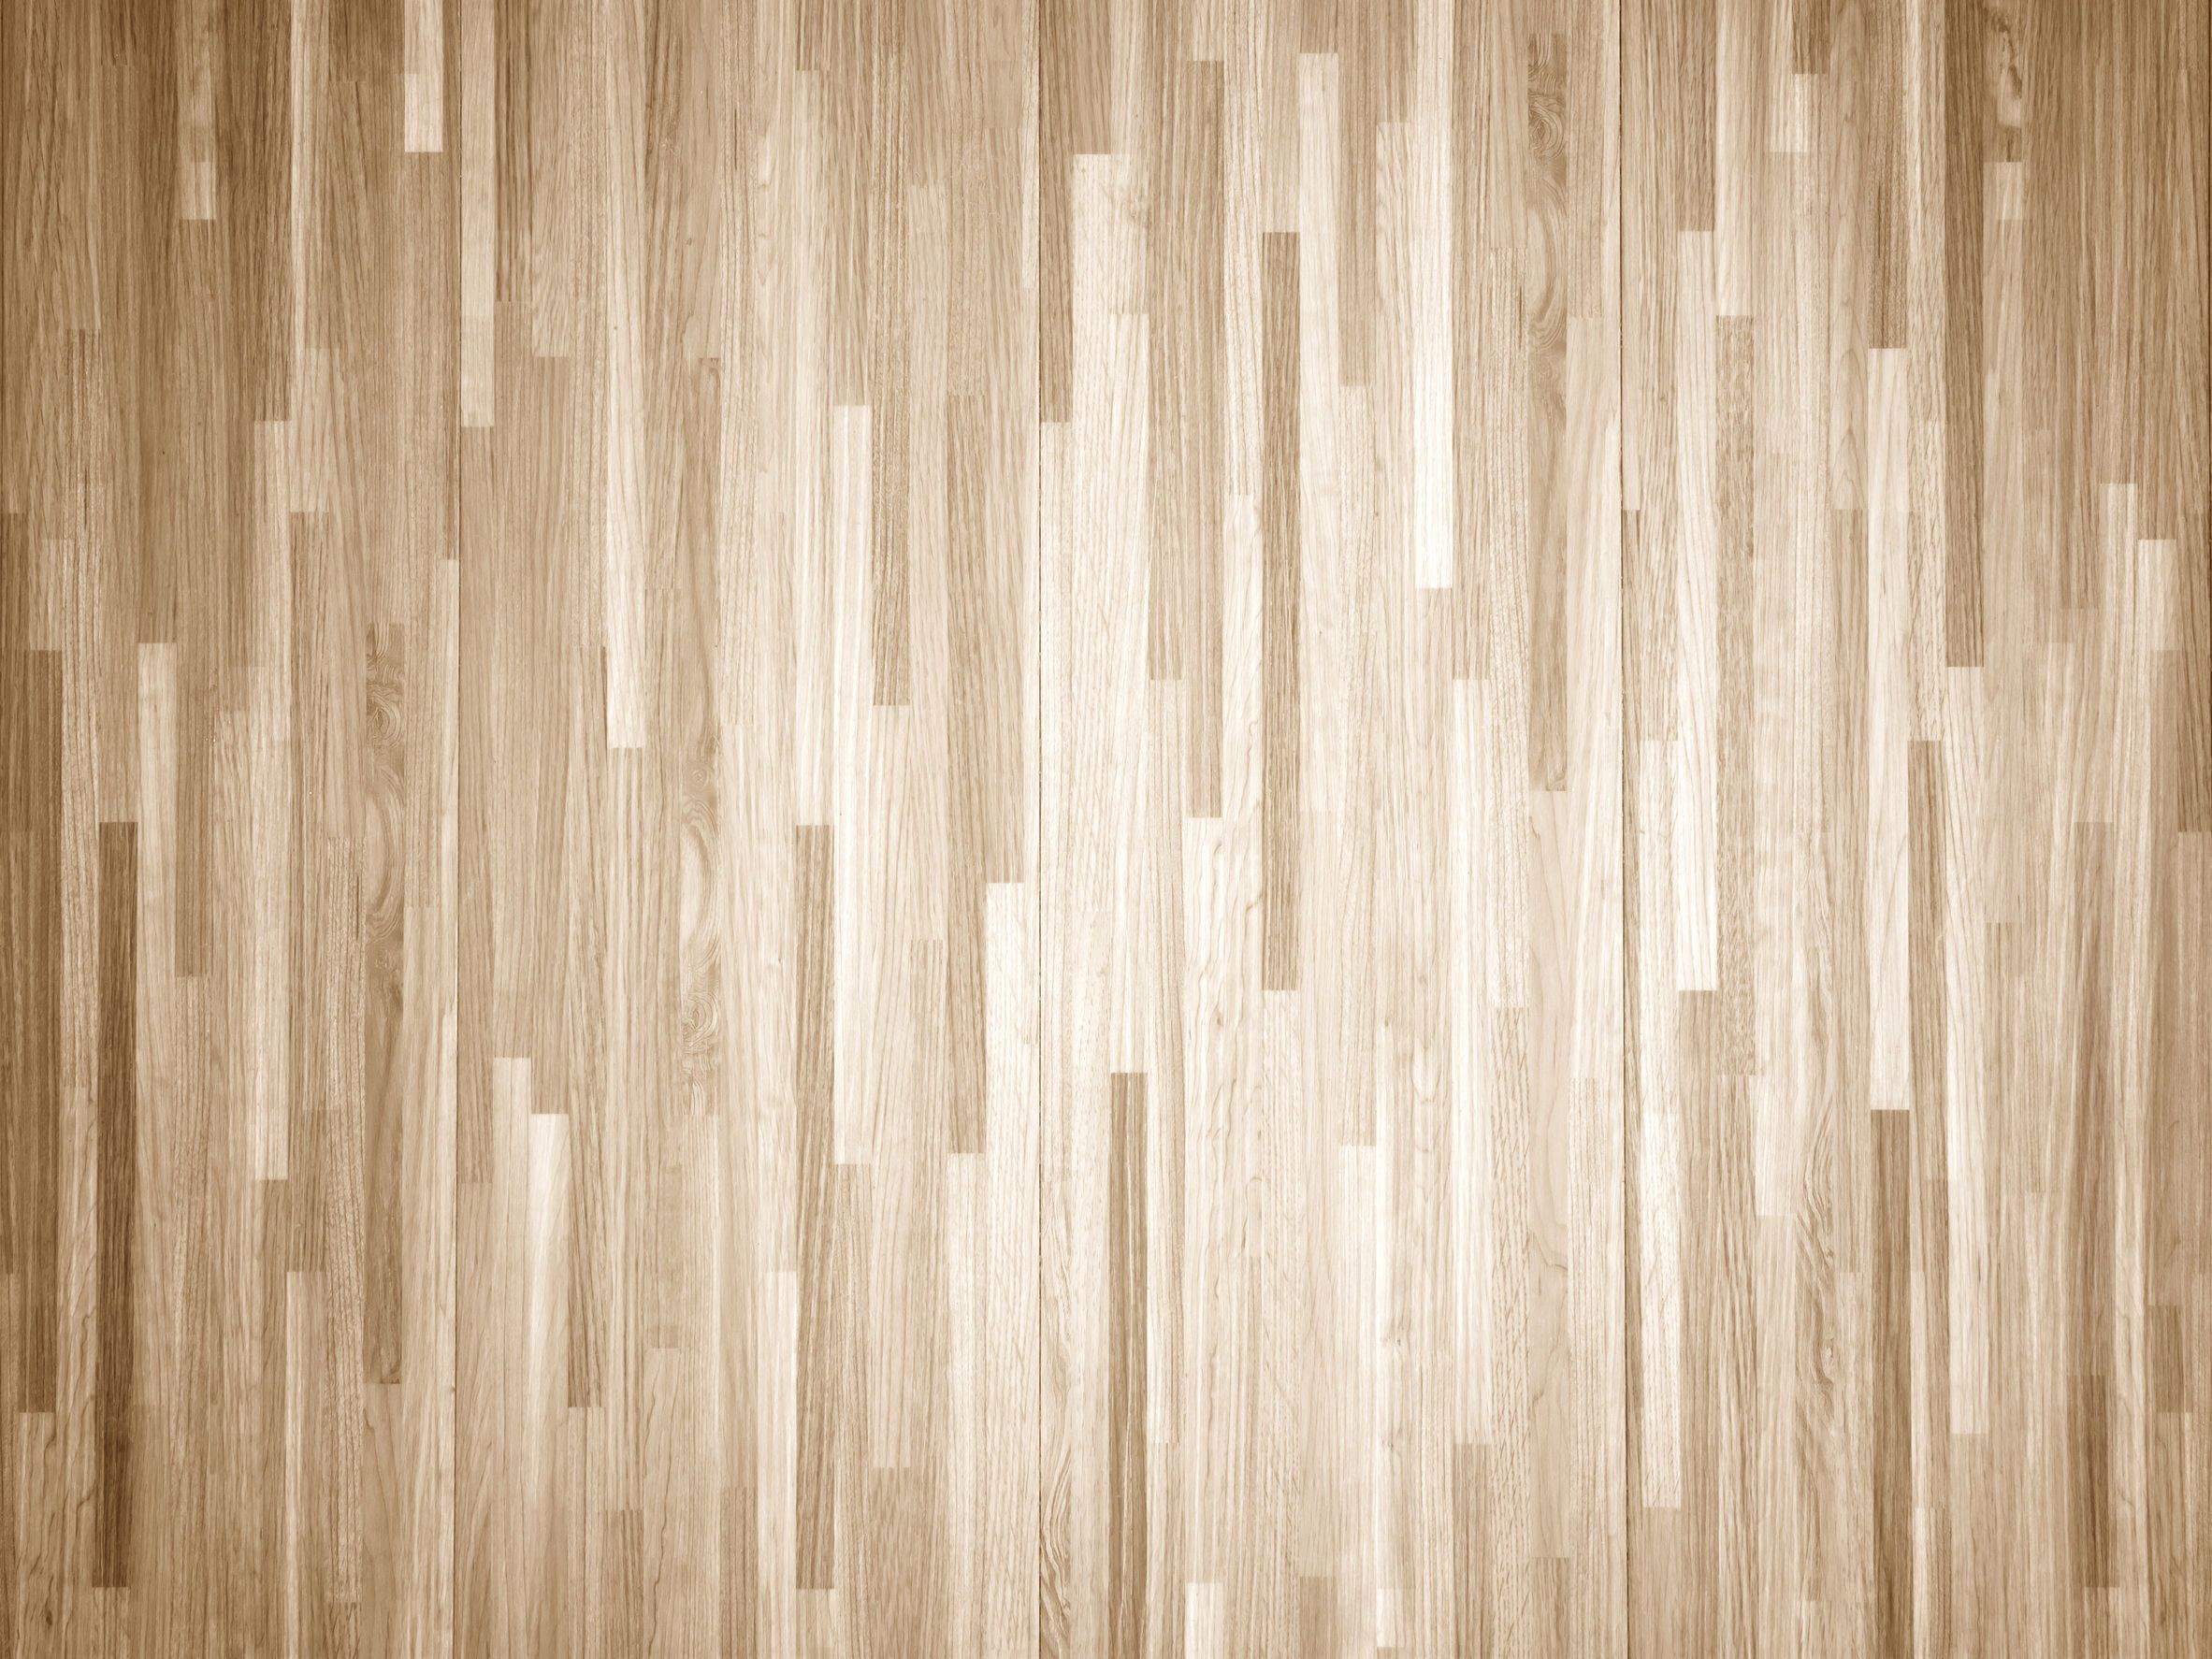 cost to install hardwood floors labor of how to chemically strip wood floors woodfloordoctor com intended for you